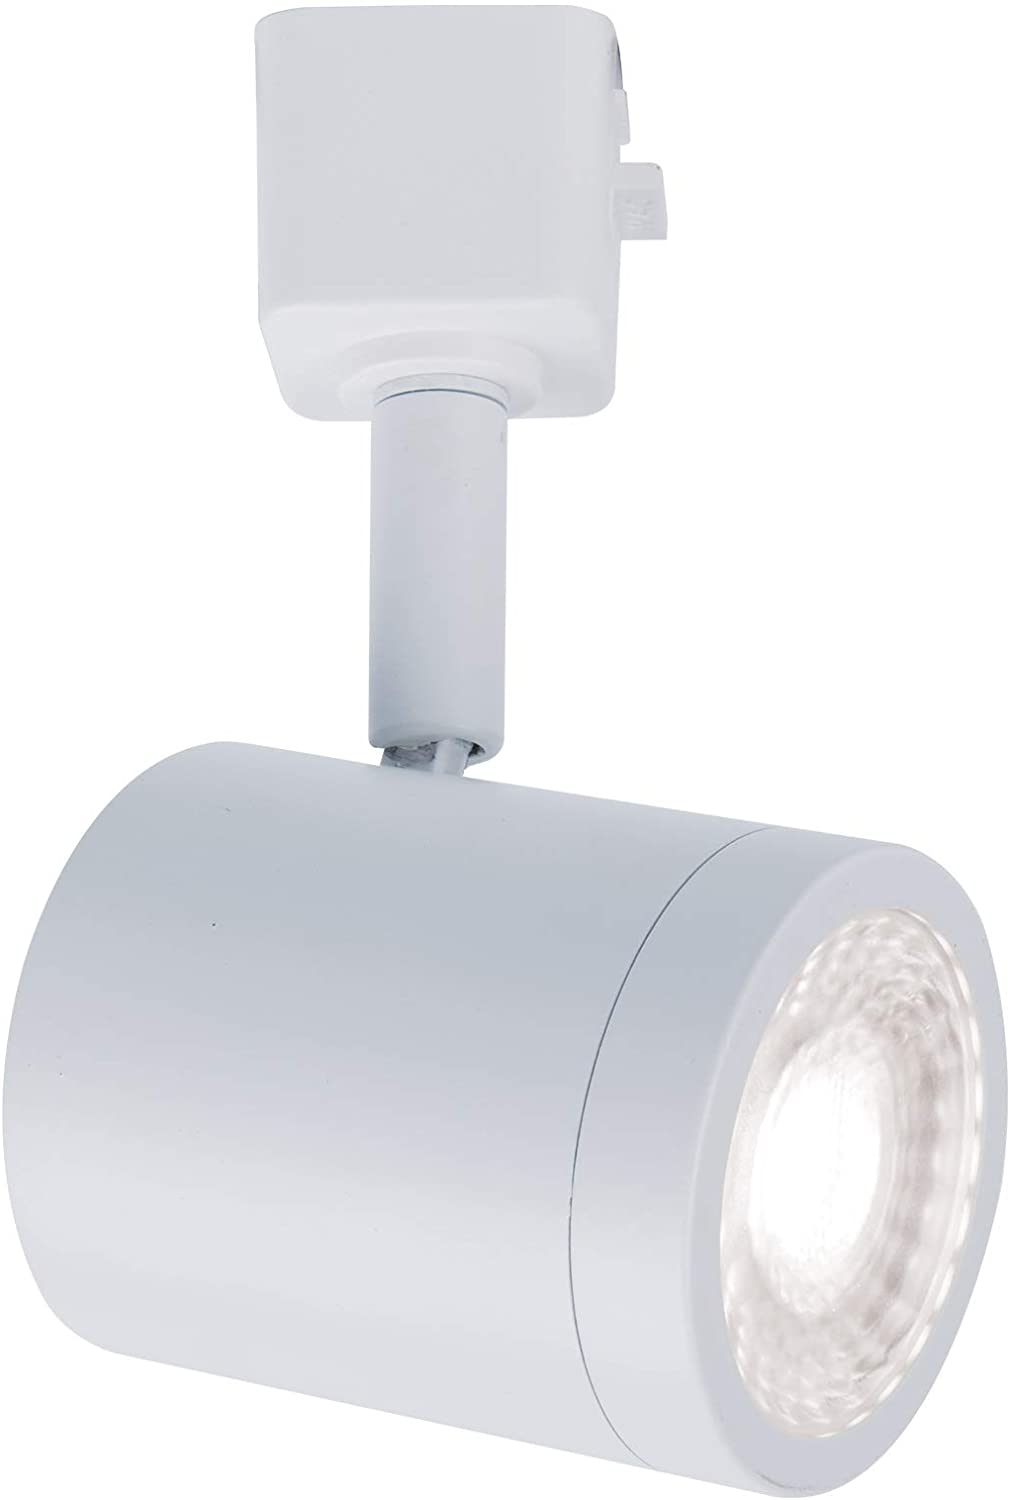 WAC Lighting J-8010-30-WT Charge Head LED Track Fixture, Pack of 1, White